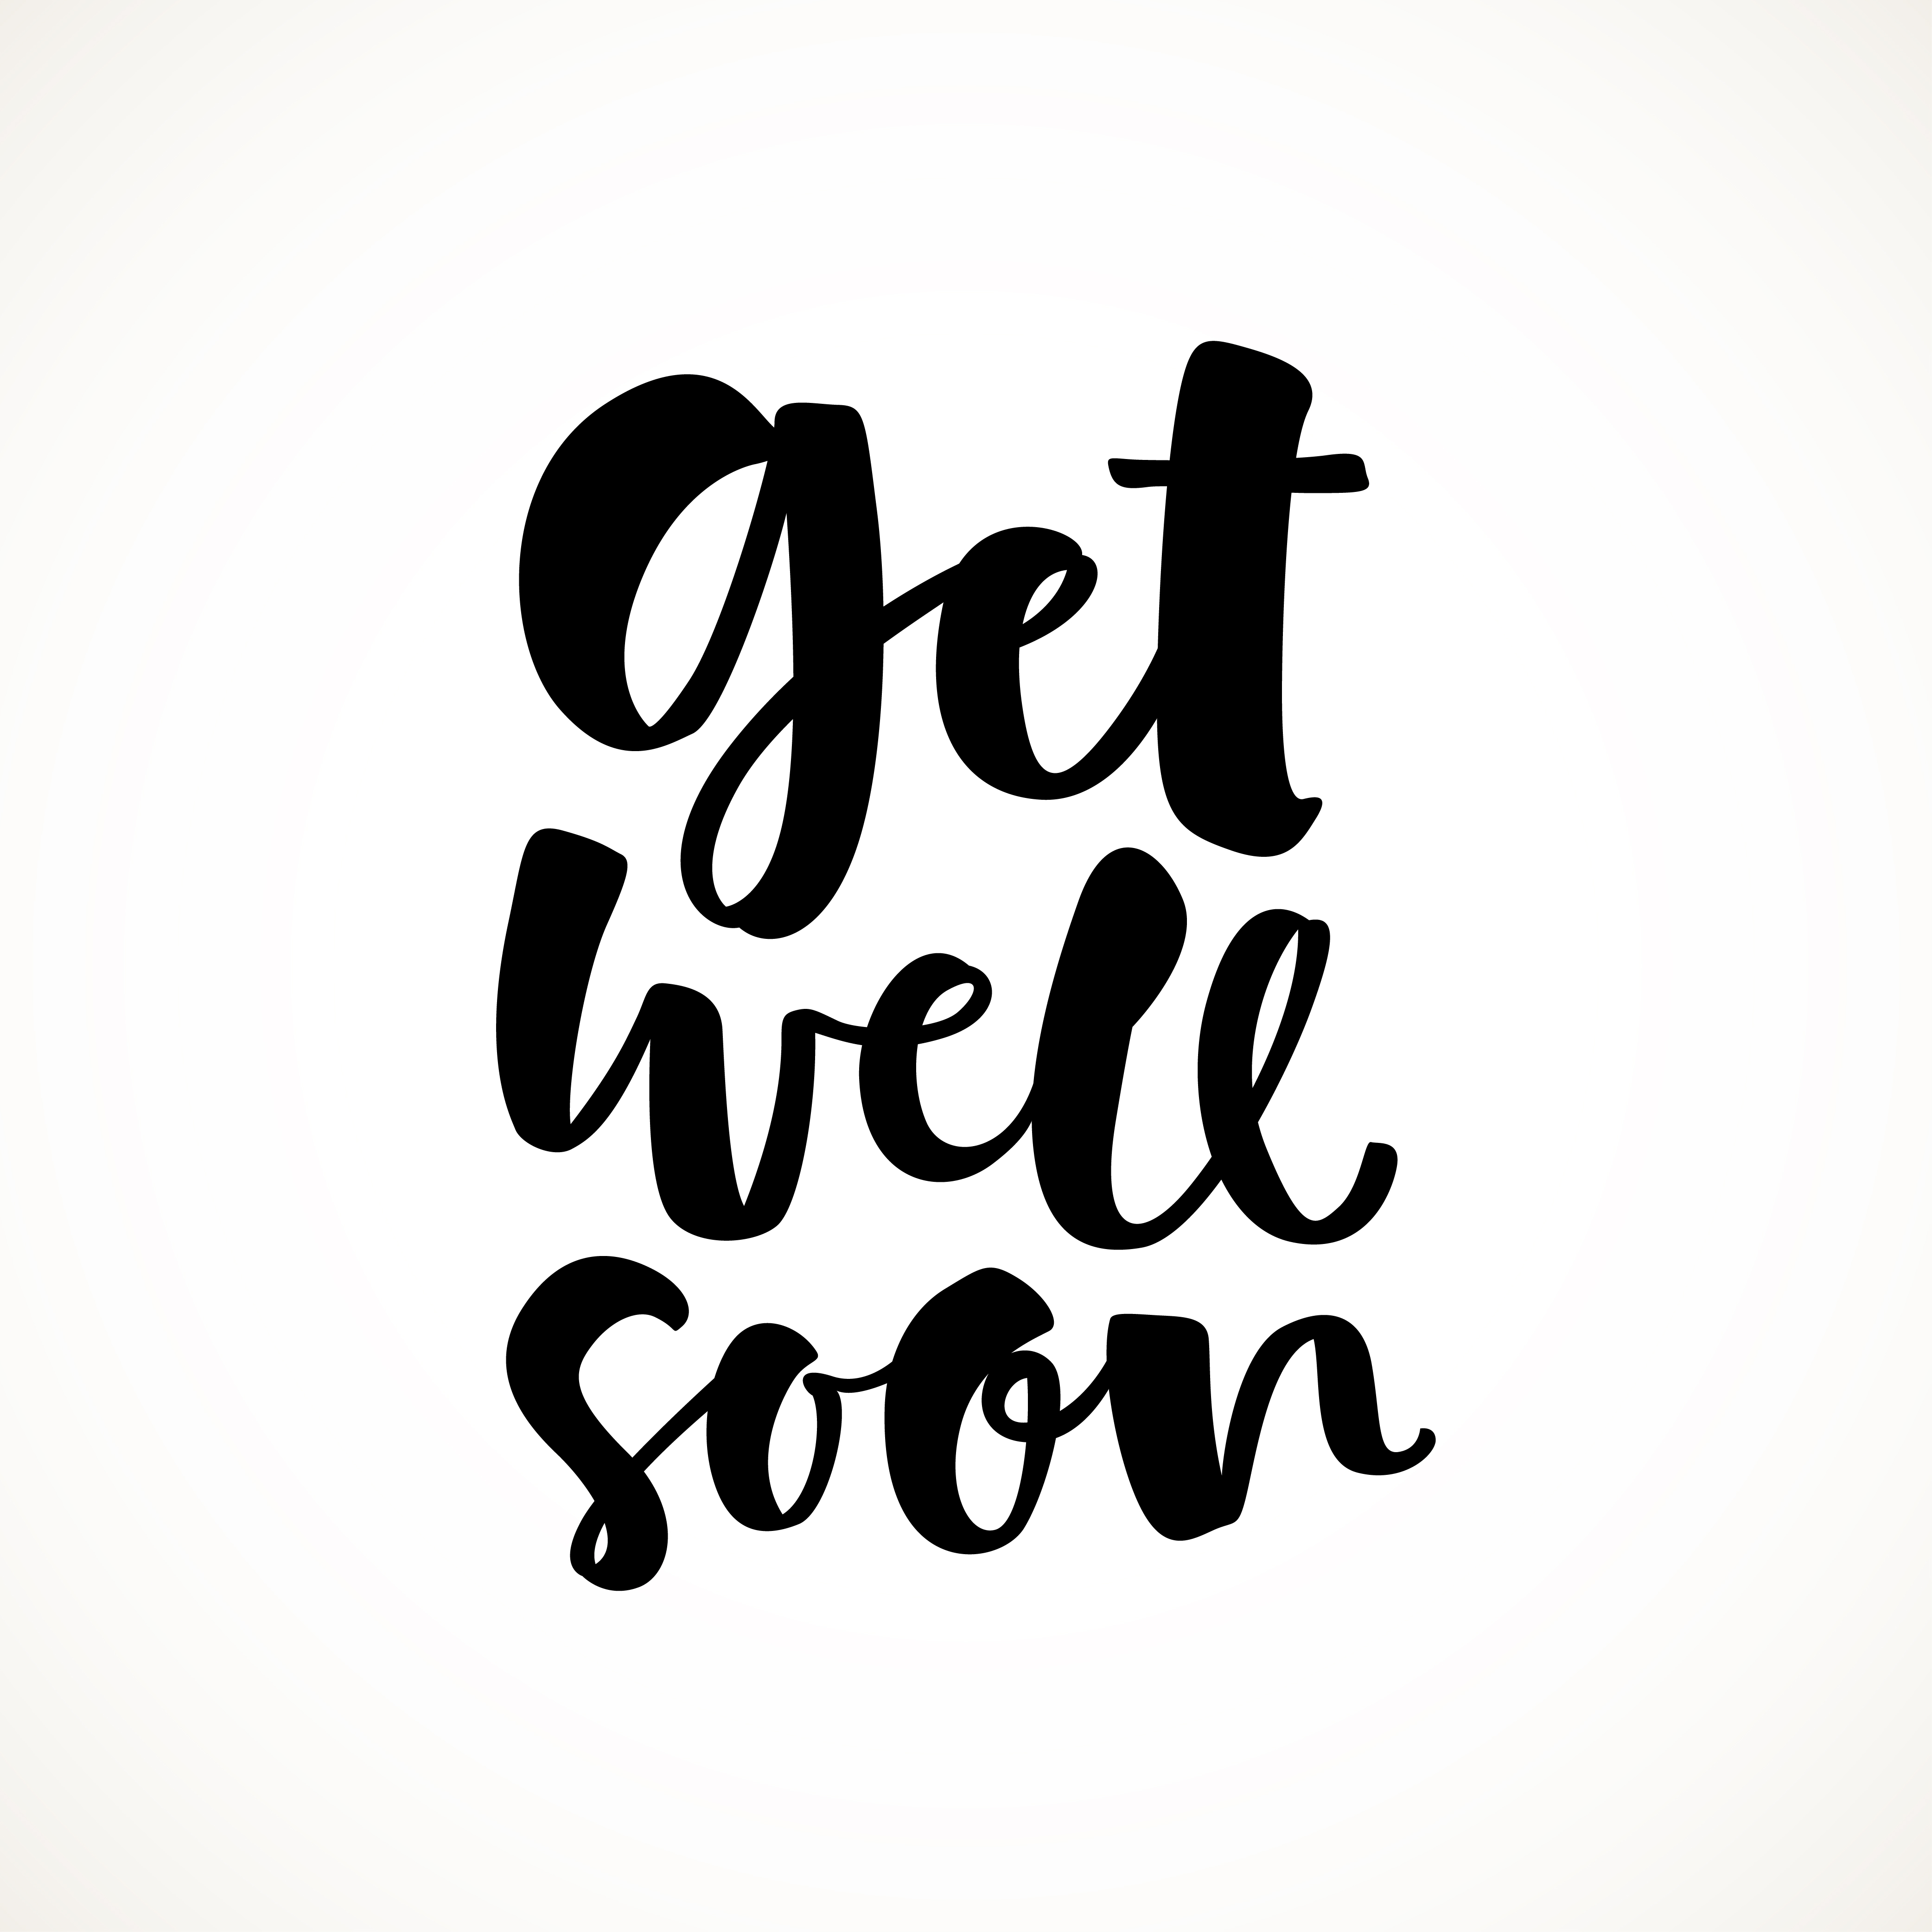 Get well soon sentiment